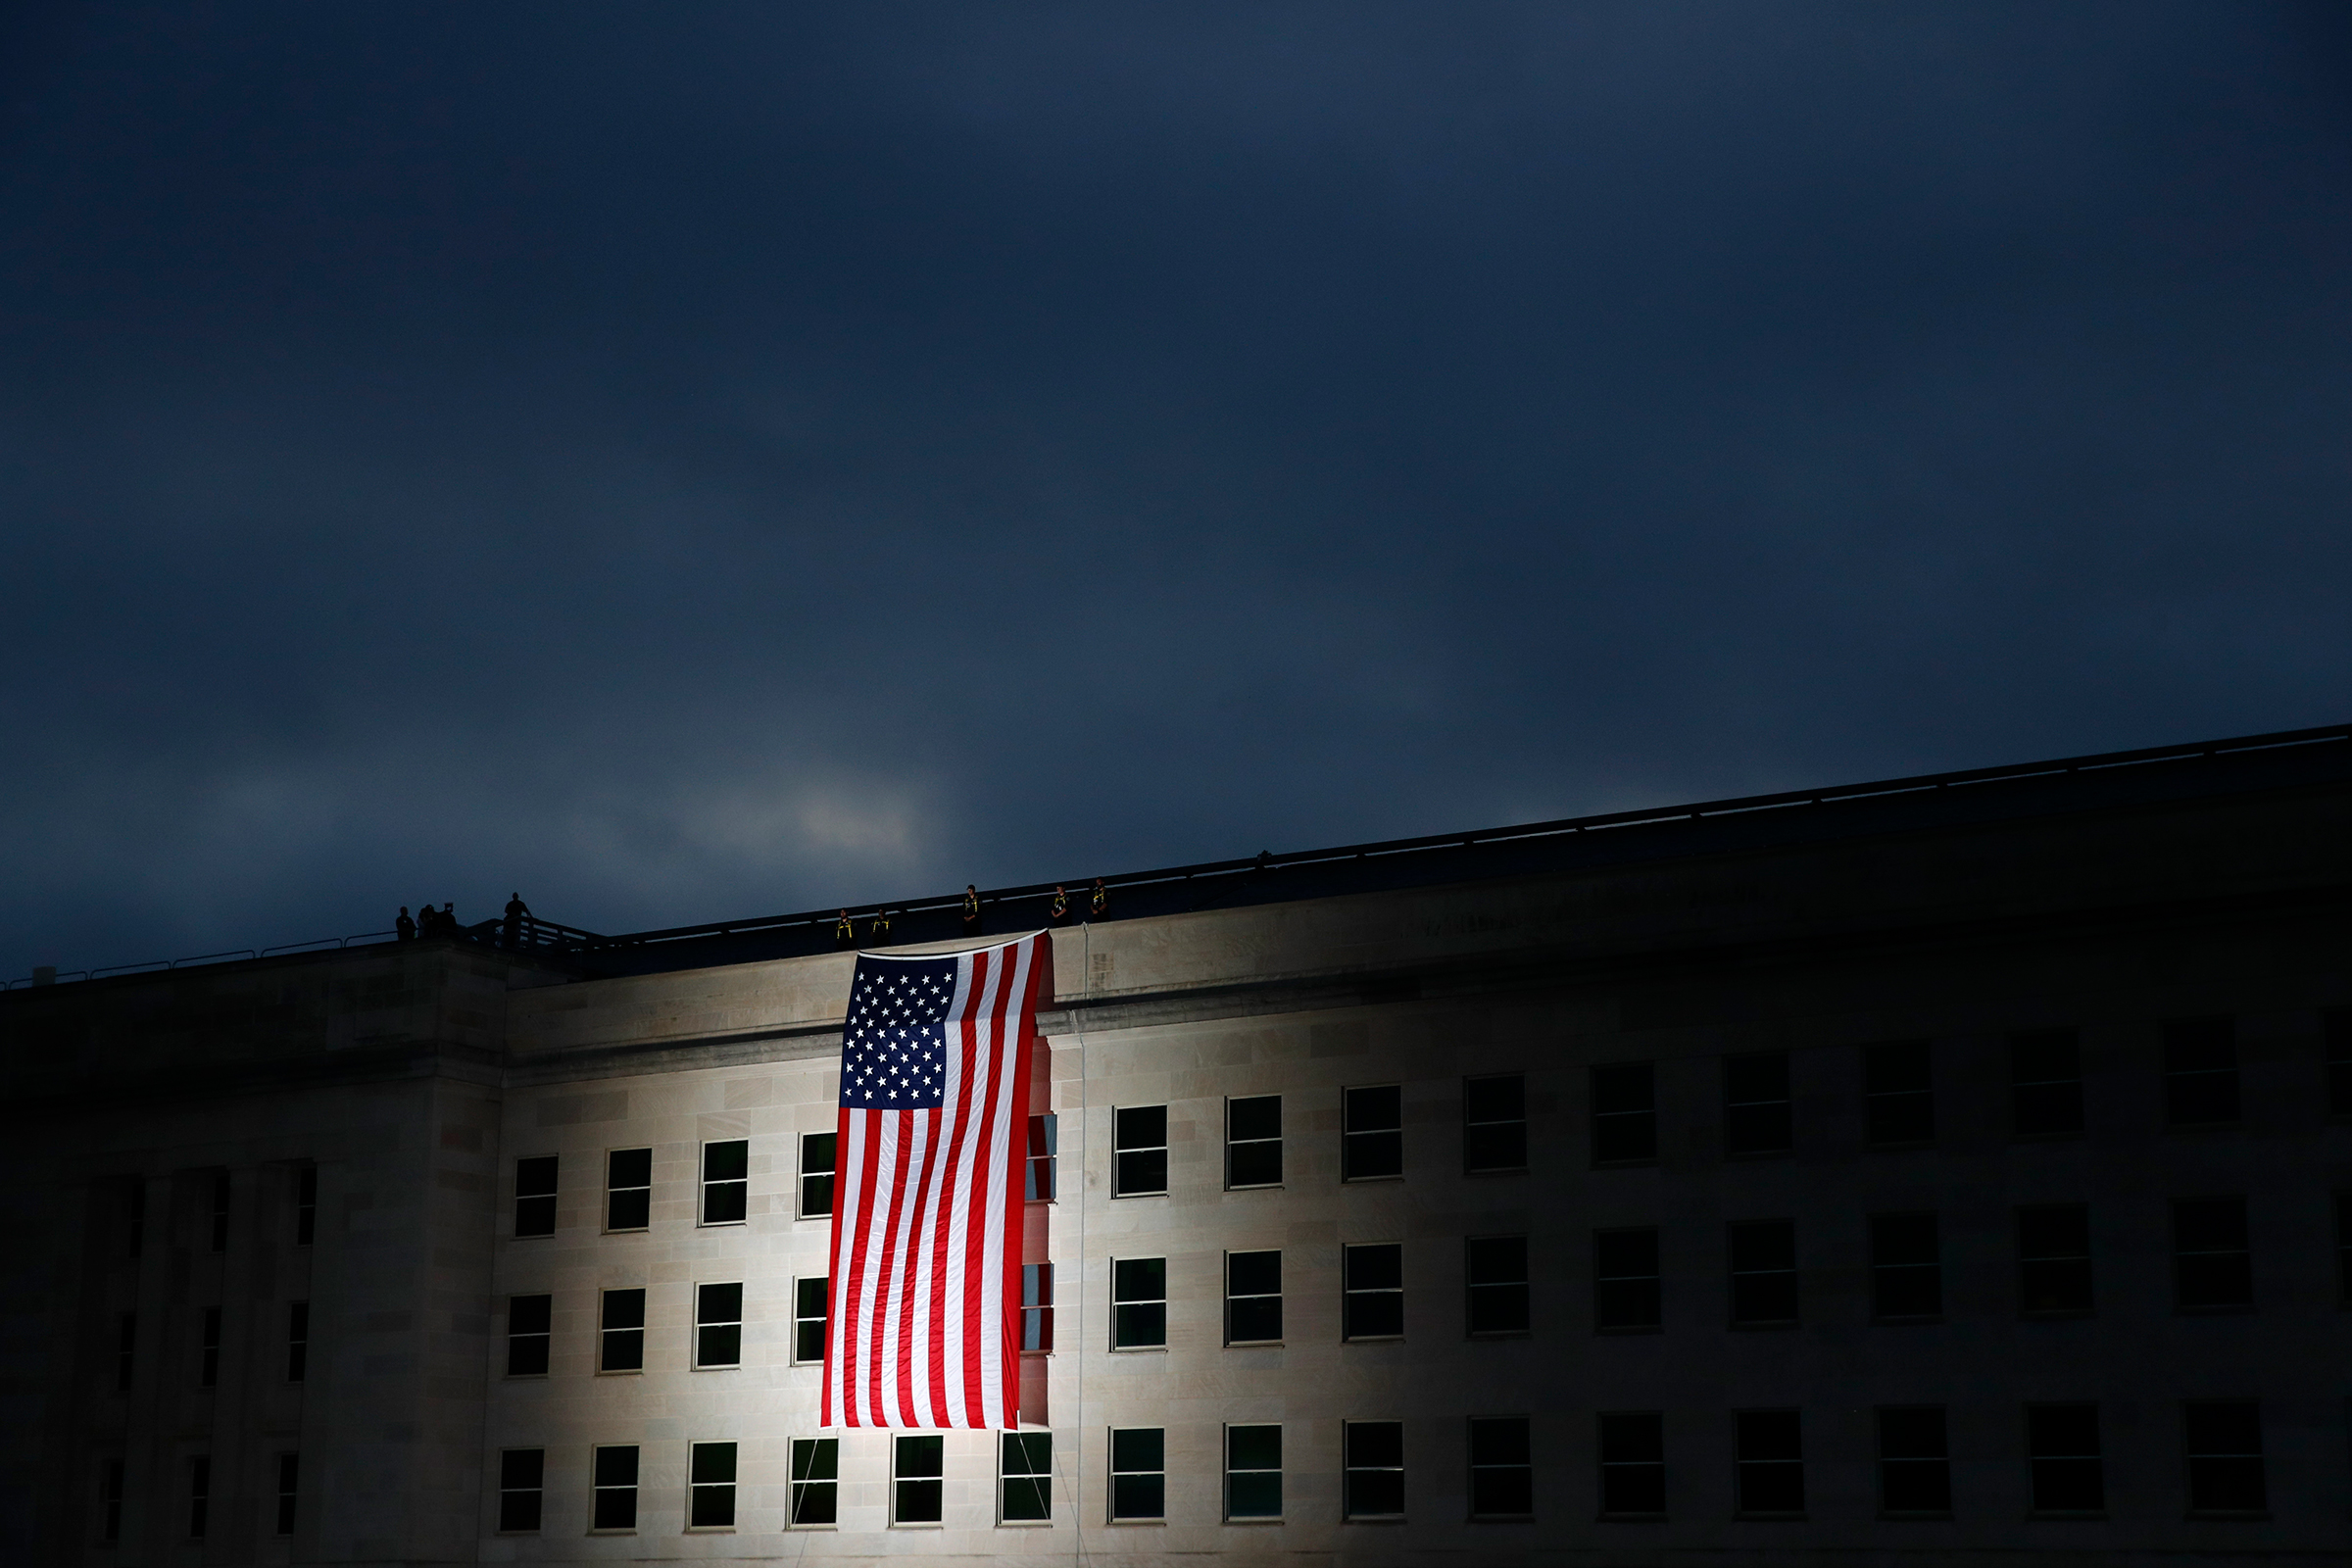 An American flag is unfurled at sunrise at the Pentagon in Washington, D.C., on Sept. 11, 2019, the 18th anniversary of the attacks.